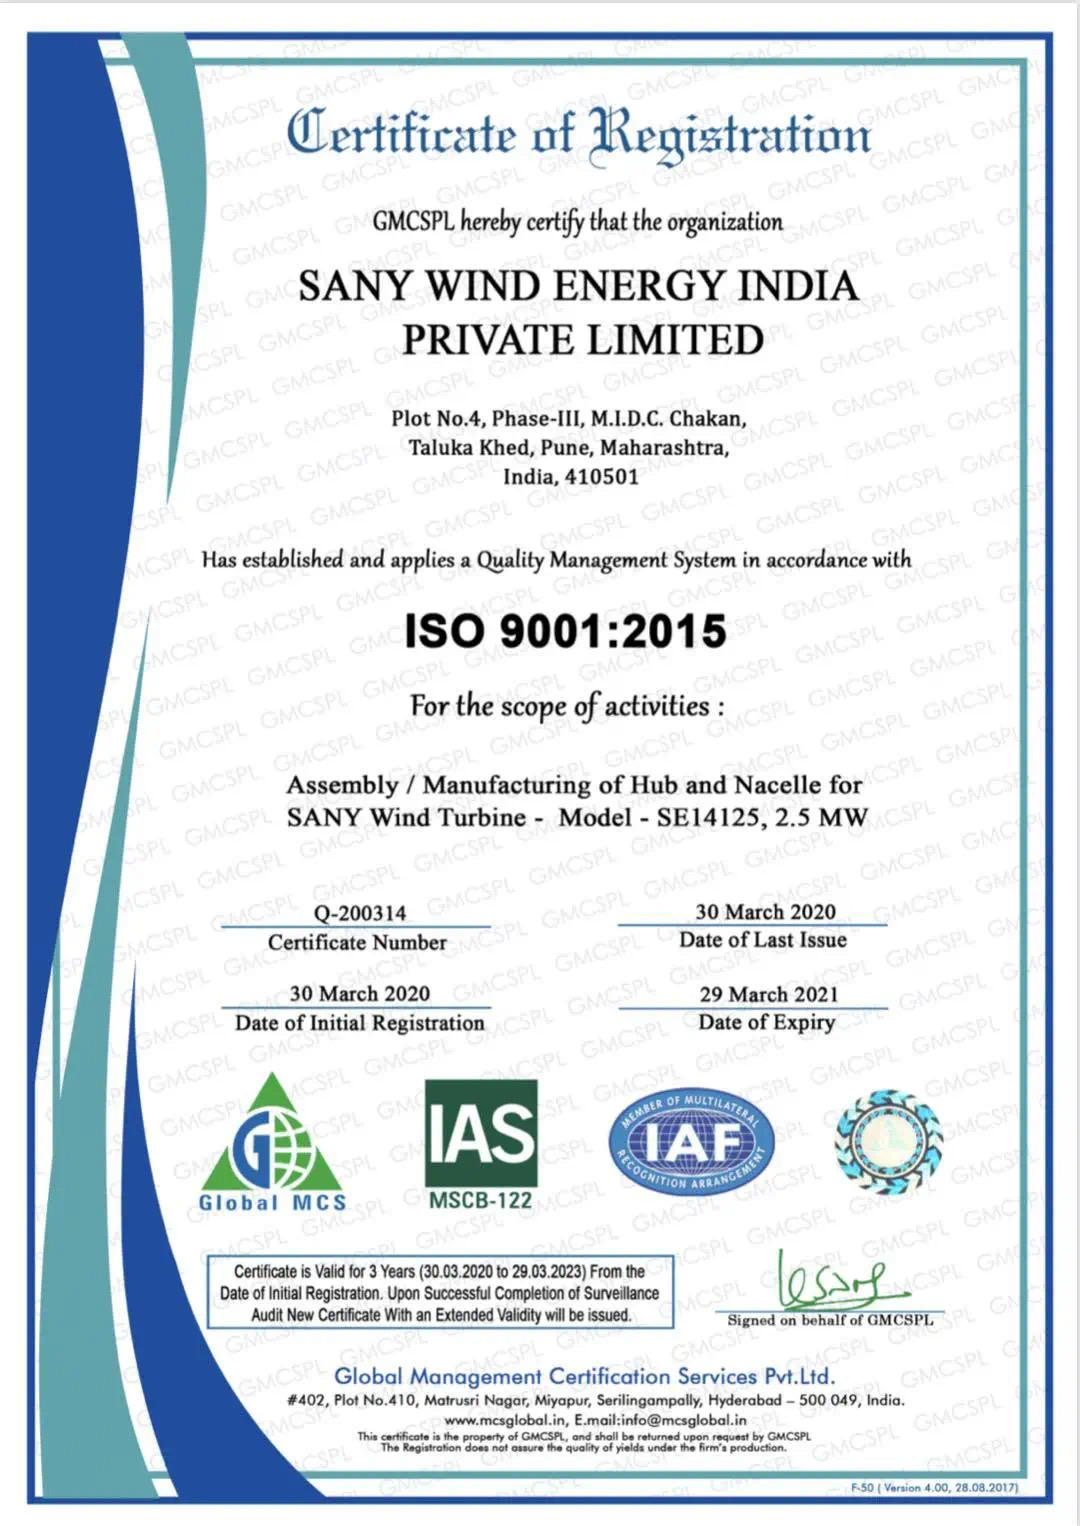 SANY Wind Energy India Obtains ISO 9001 Quality System Certification On April 2, a piece of good news came from Sany Wind Energy India (the subsidiary of SANY Heavy Energy Co.Ltd., its full name is Sany Wind Energy India Pvt. Ltd.) that it has successfully obtained the ISO 9001: 2015 quality system certification submitted